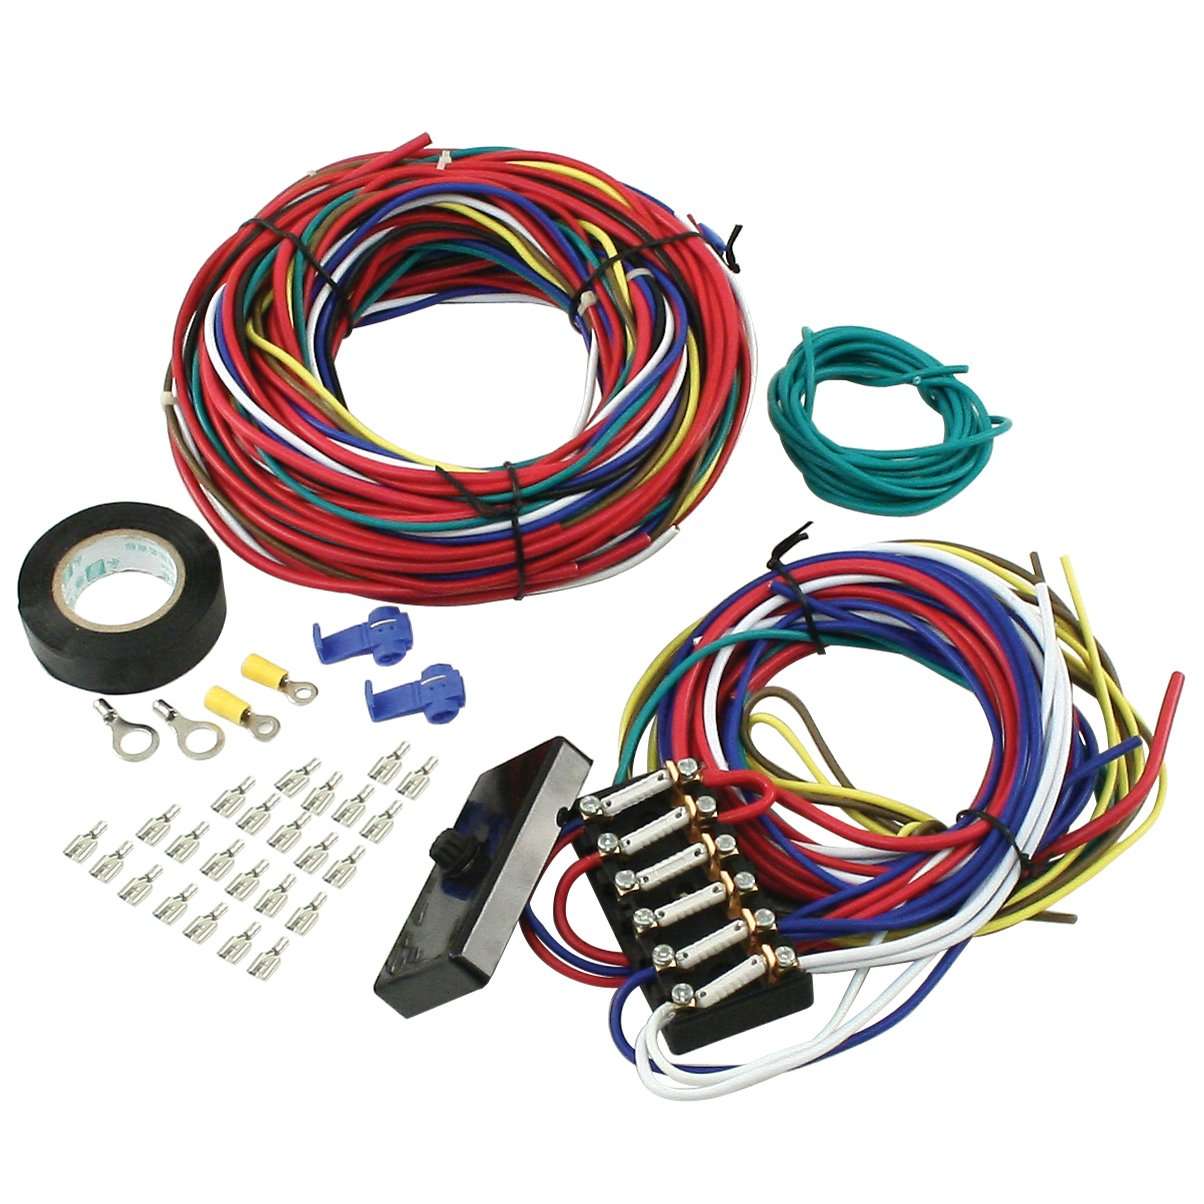 712Fyt3MSiL._SL1204_ amazon com empi 00 9466 0 wire loom kit, vw buggy, sand rail VW Wiring Harness Kits at aneh.co